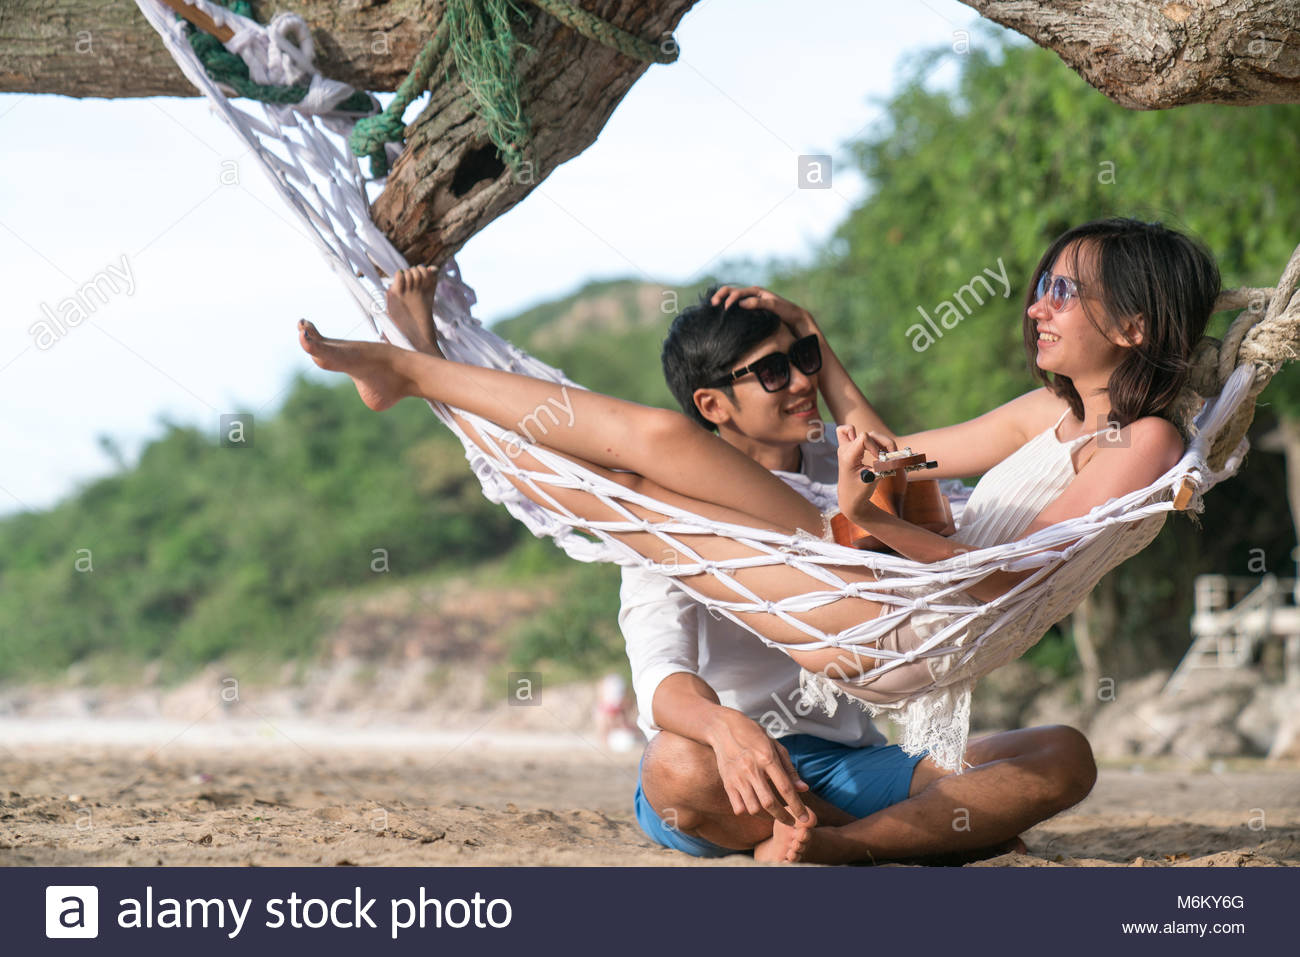 couple lover enjoy honeymoon and long vacation on the sea beach, siiting on the swing together relax and confortable, - Stock Image